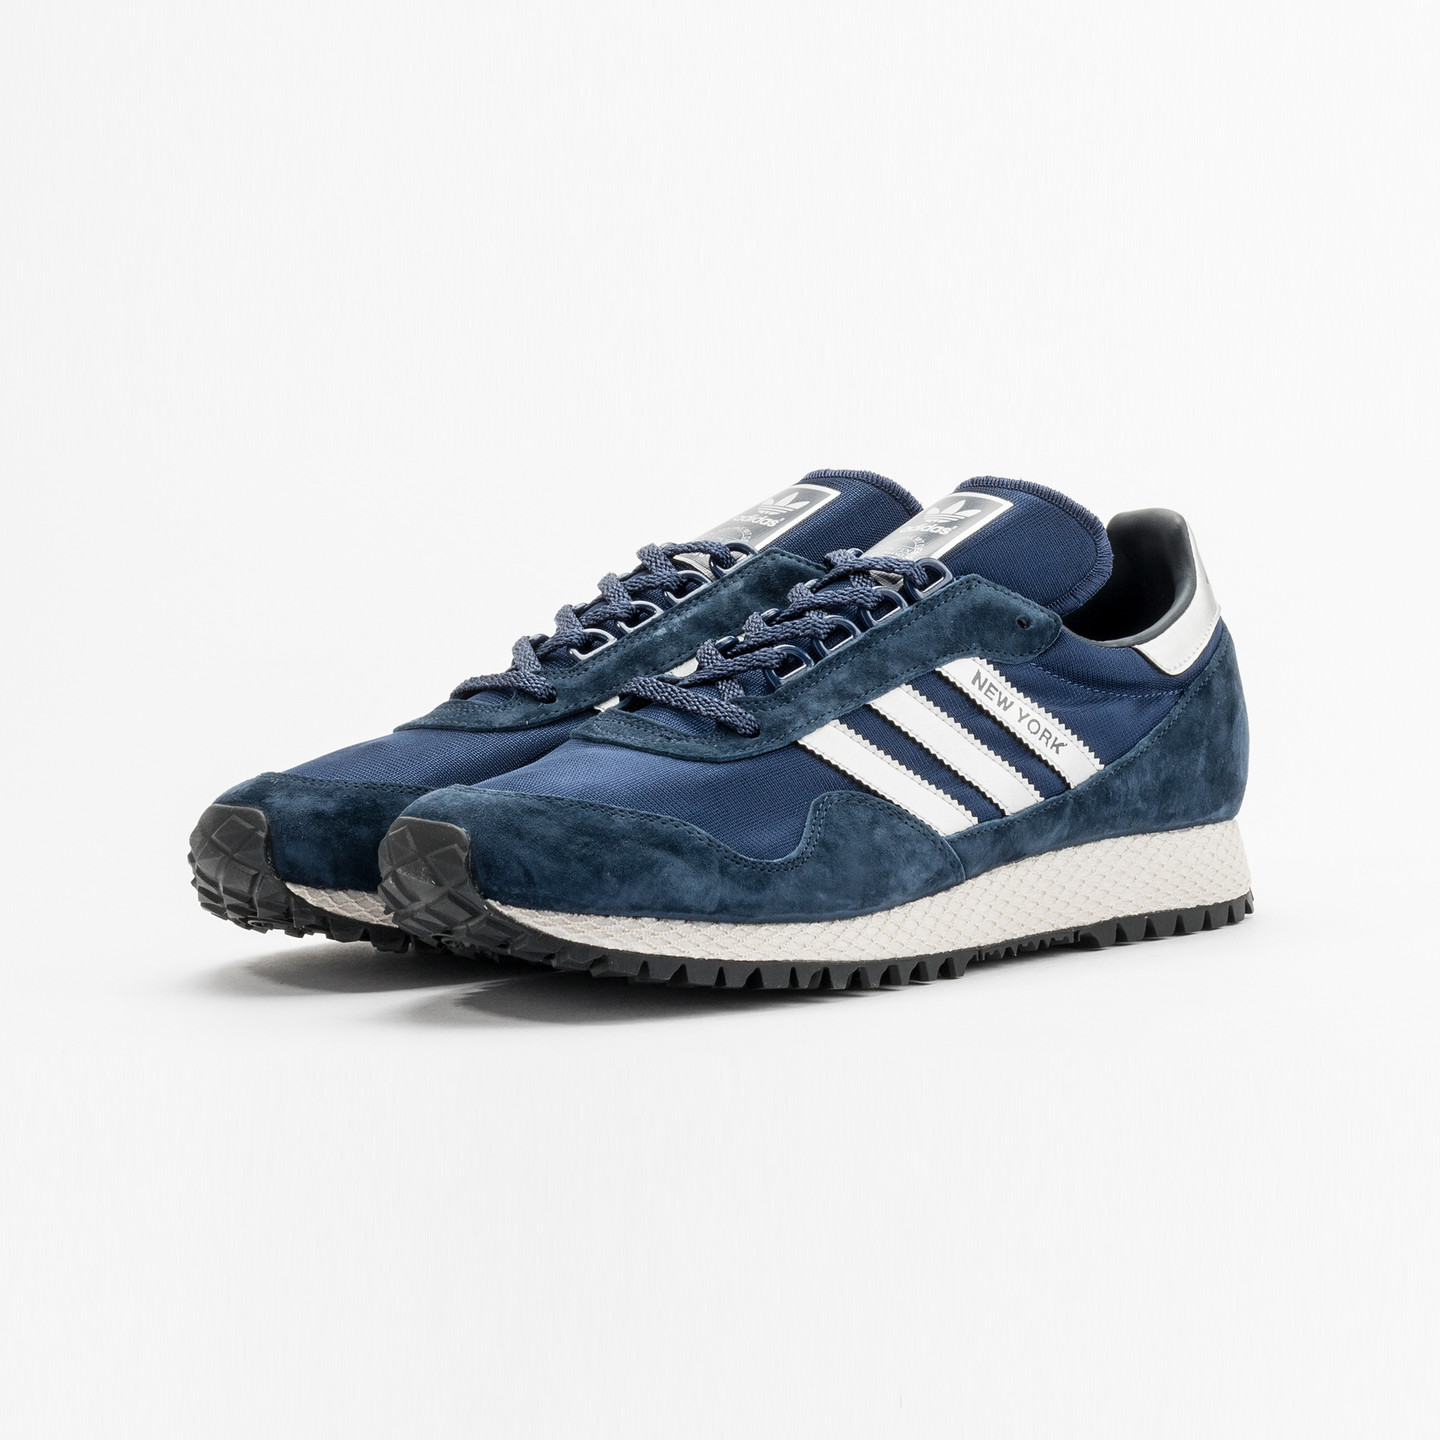 Adidas New York Collegiate Navy / Metallic Silver BB1188-44.66